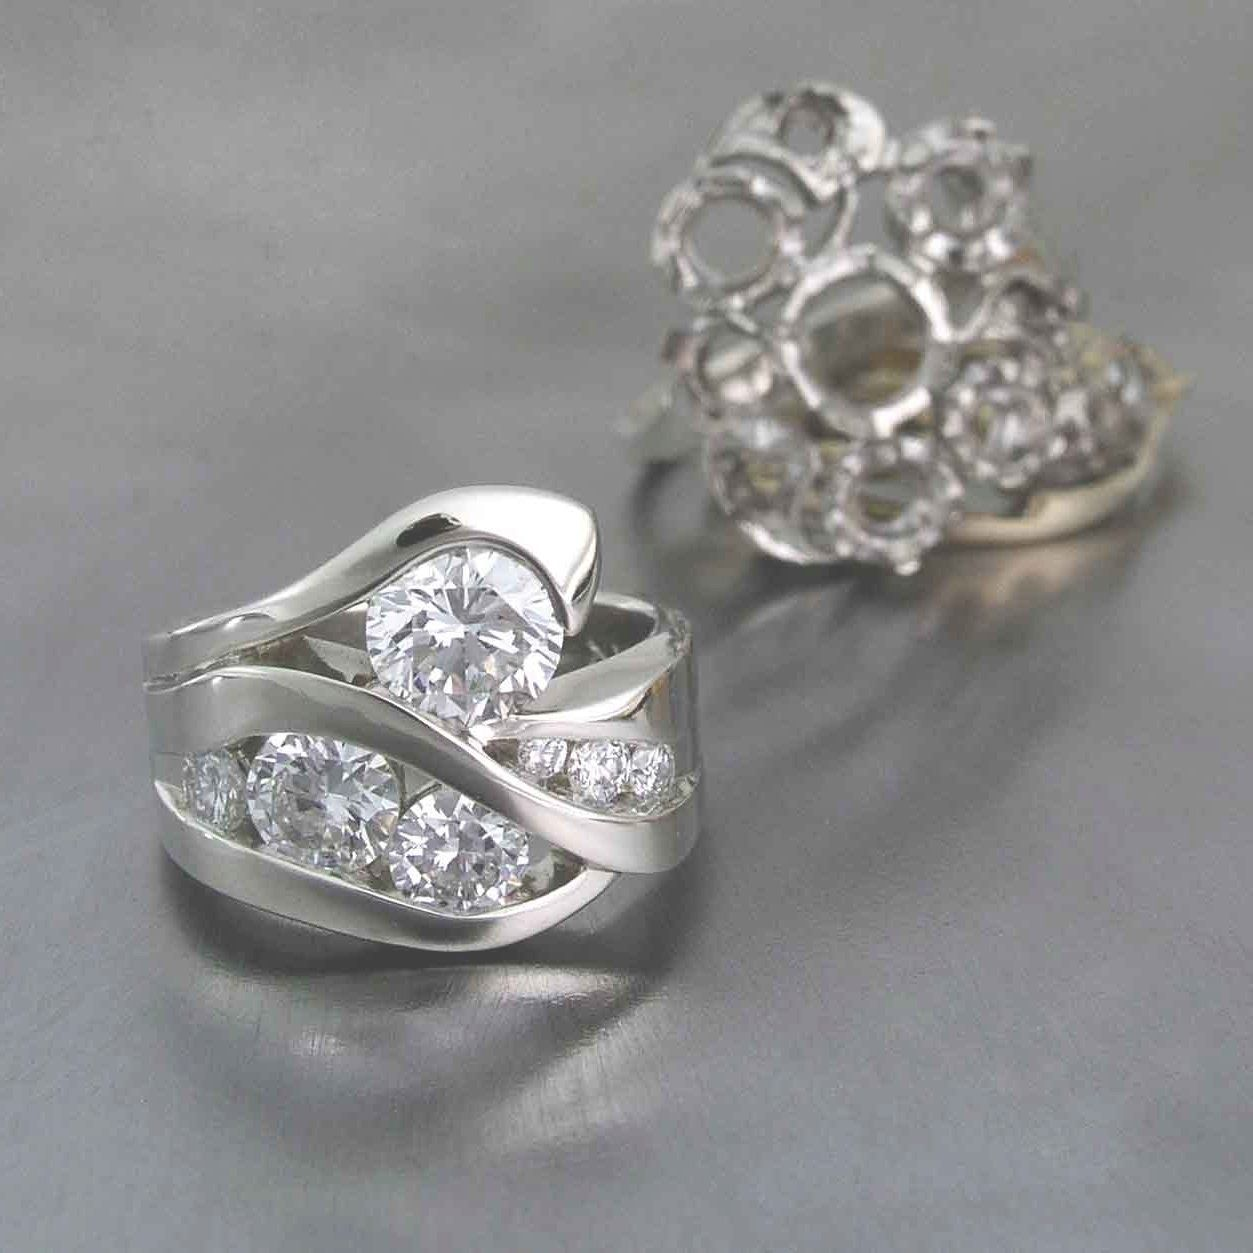 Redesign Wedding Ring After Divorce Awesome Ideas B12 All About